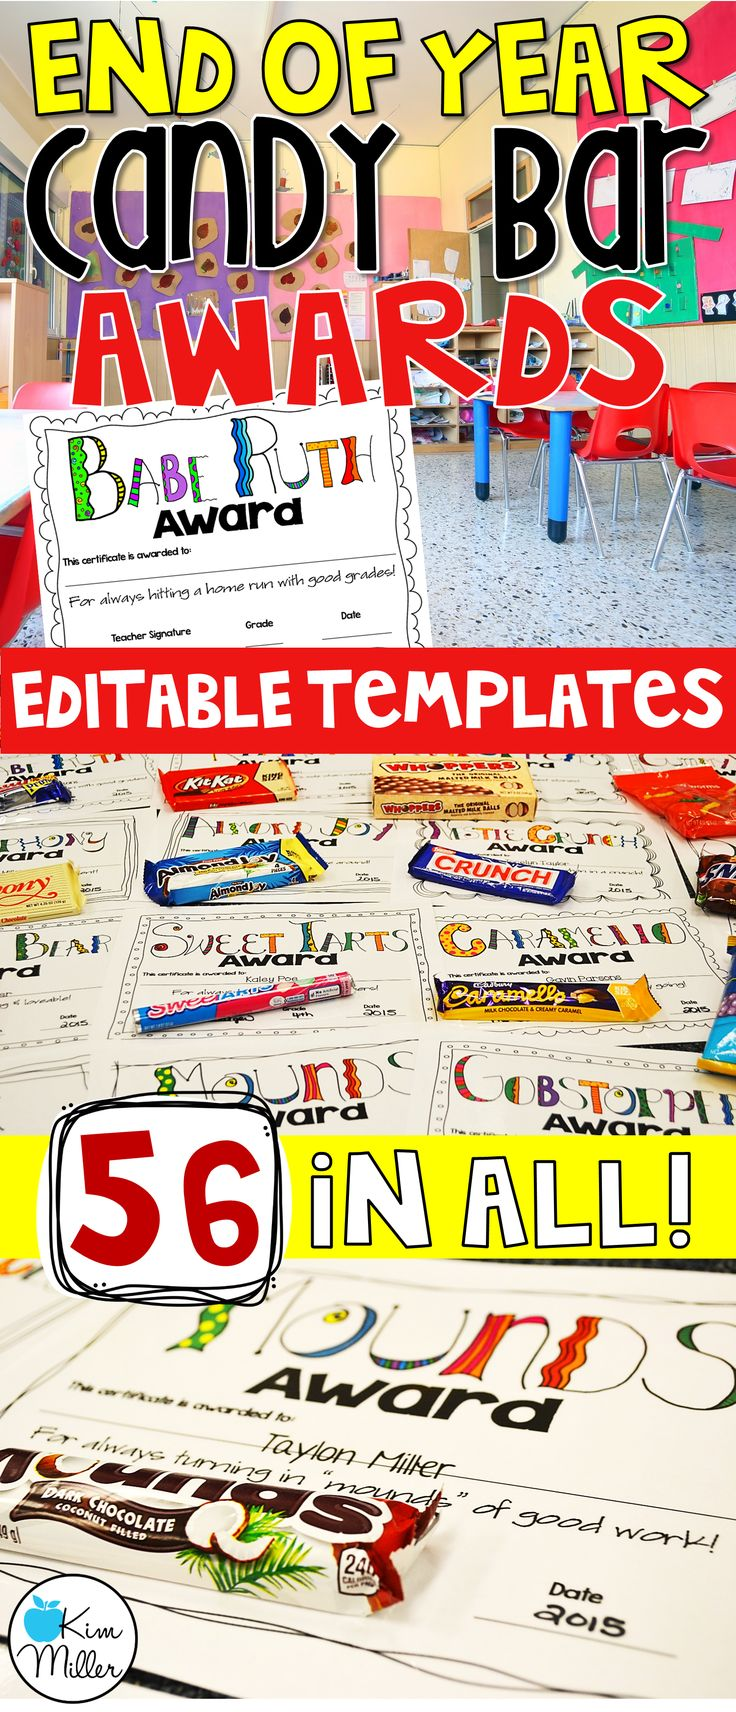 End of Year Candy Bar Awards for Students - editable templates - 56 in all